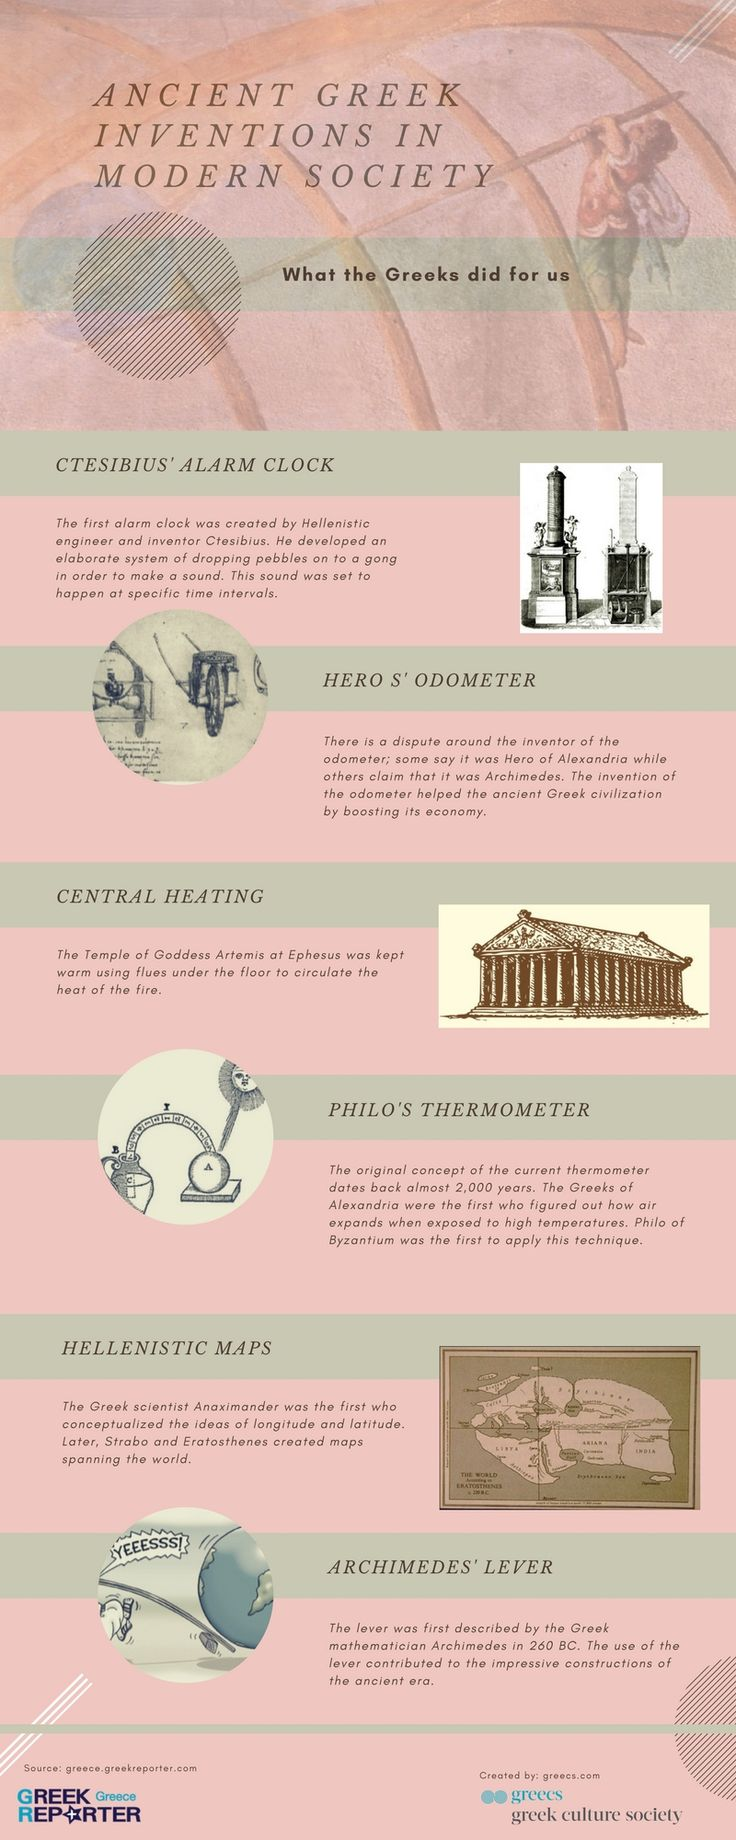 #Ancient #technology #inventions from #Archimedes, #Hero and more...  #Hellenistic, #genius, #Greek